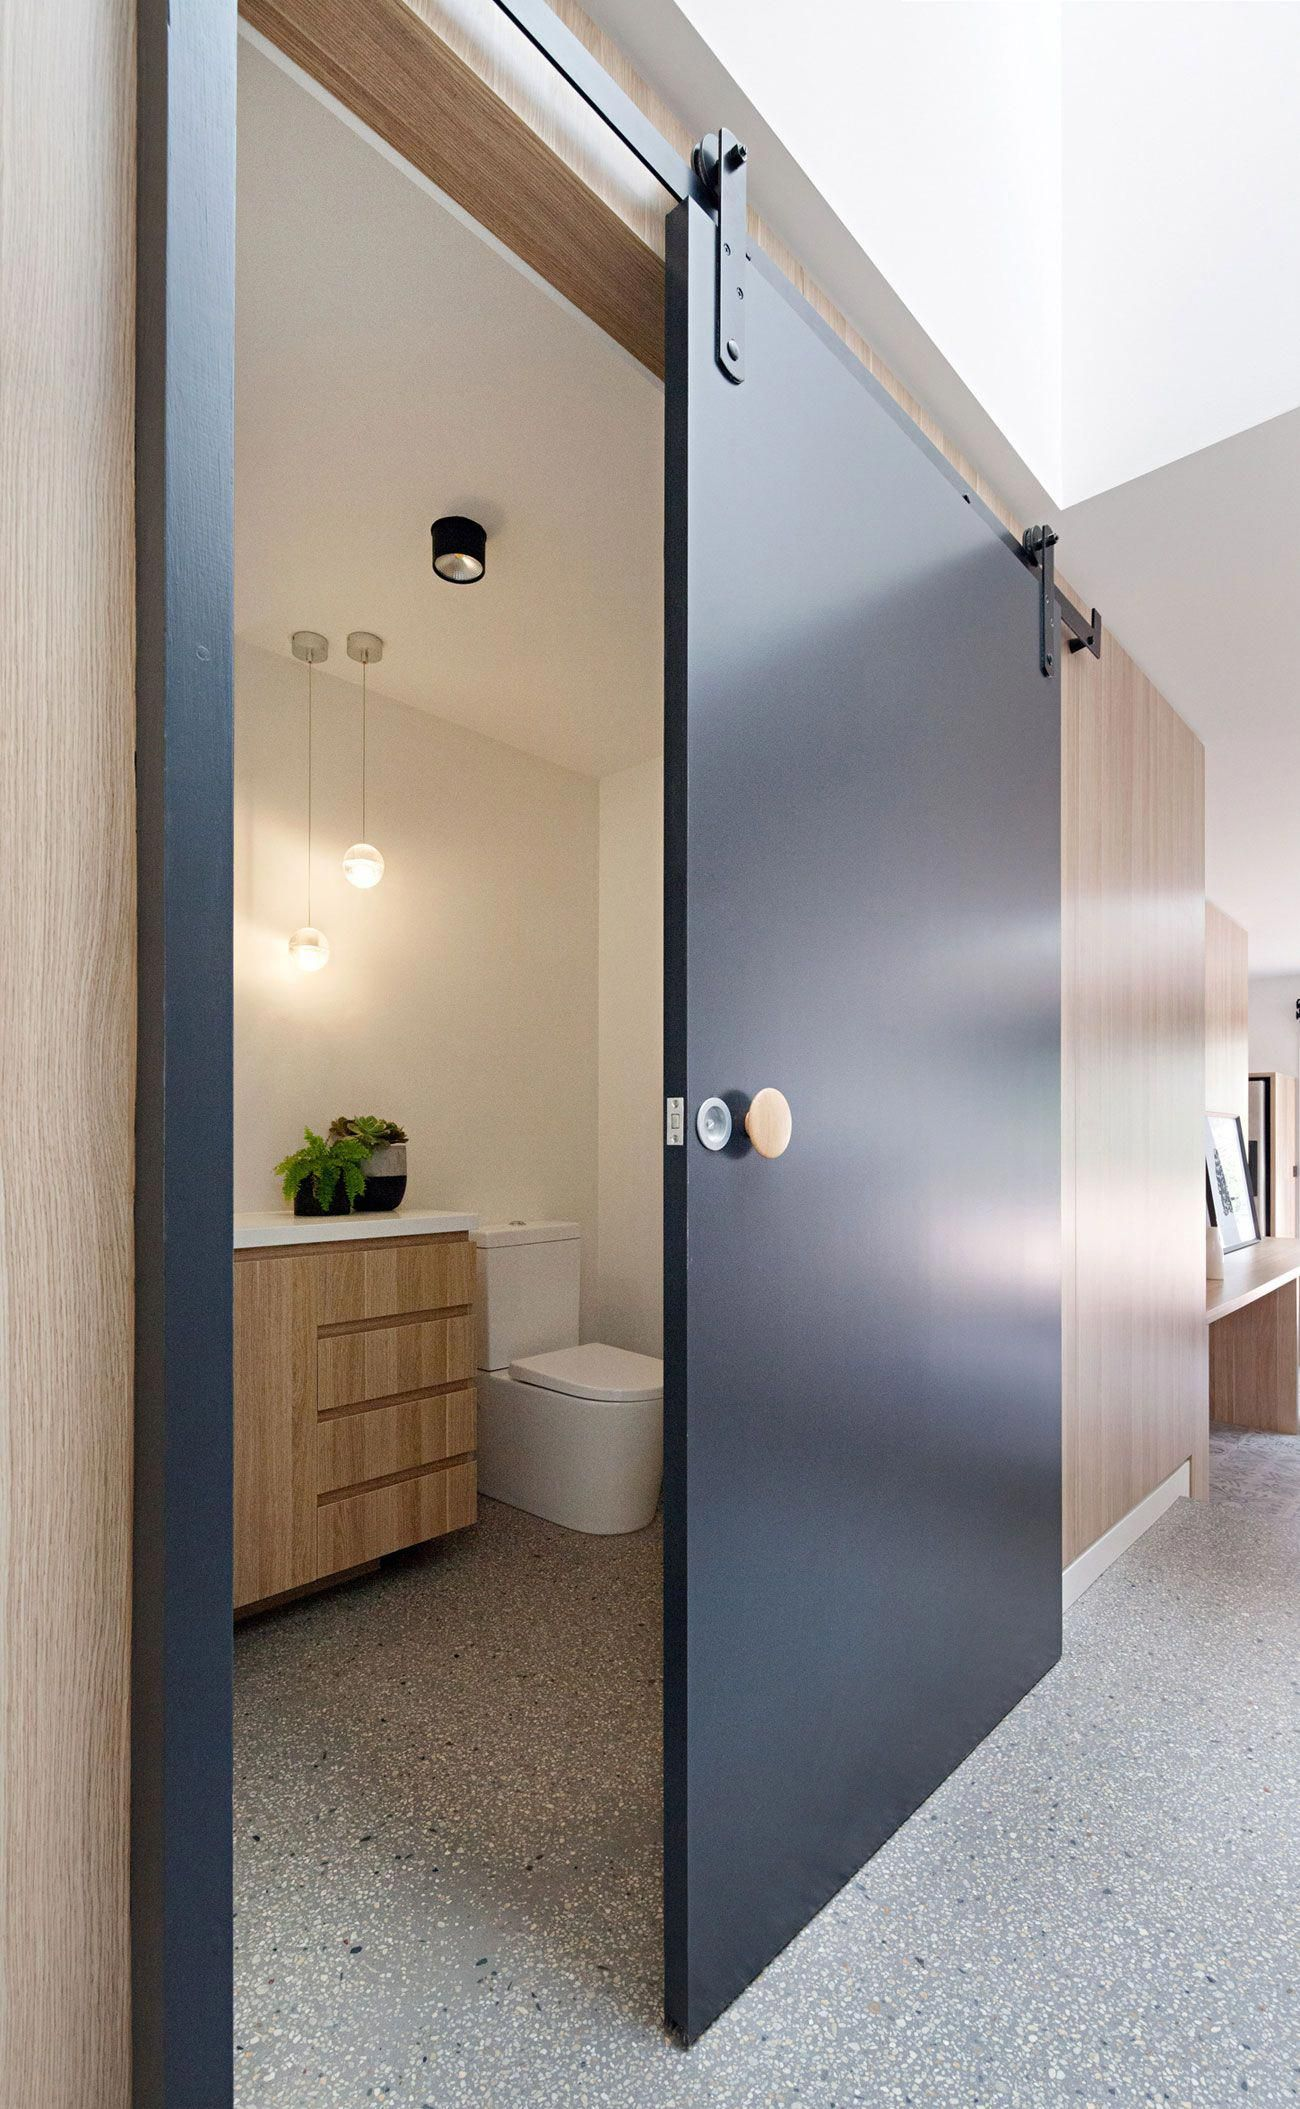 This House Dating From 1970 Was Recently Remodeled To Make It Suitable And Comfortable For A Famil Sliding Doors Interior Bathroom Design Interior Barn Doors